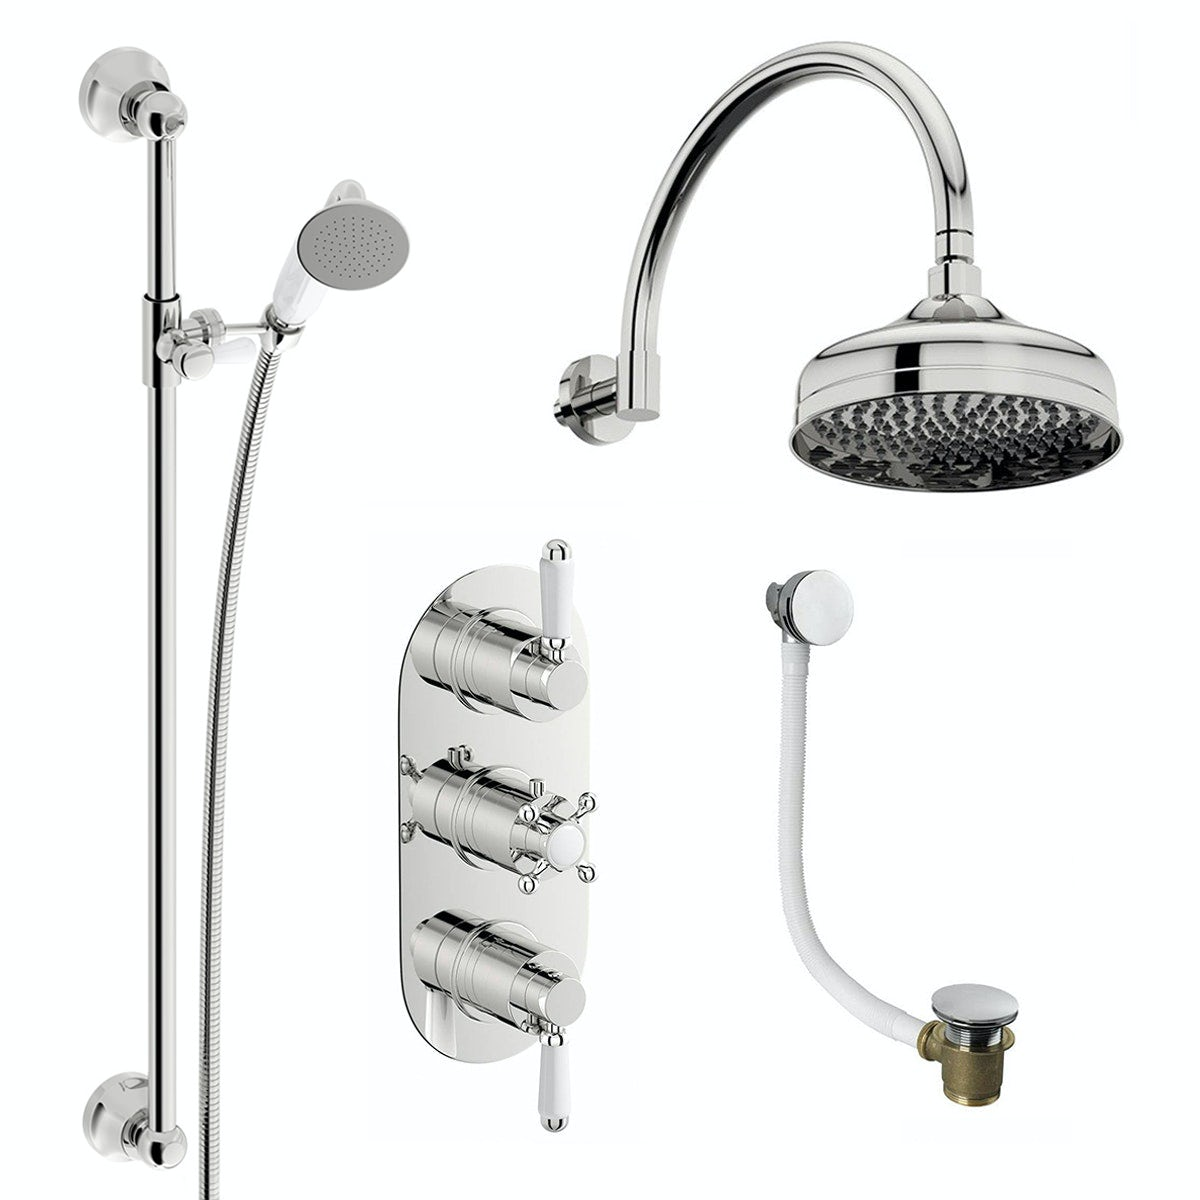 The Bath Co. Camberley thermostatic shower valve with shower bath set